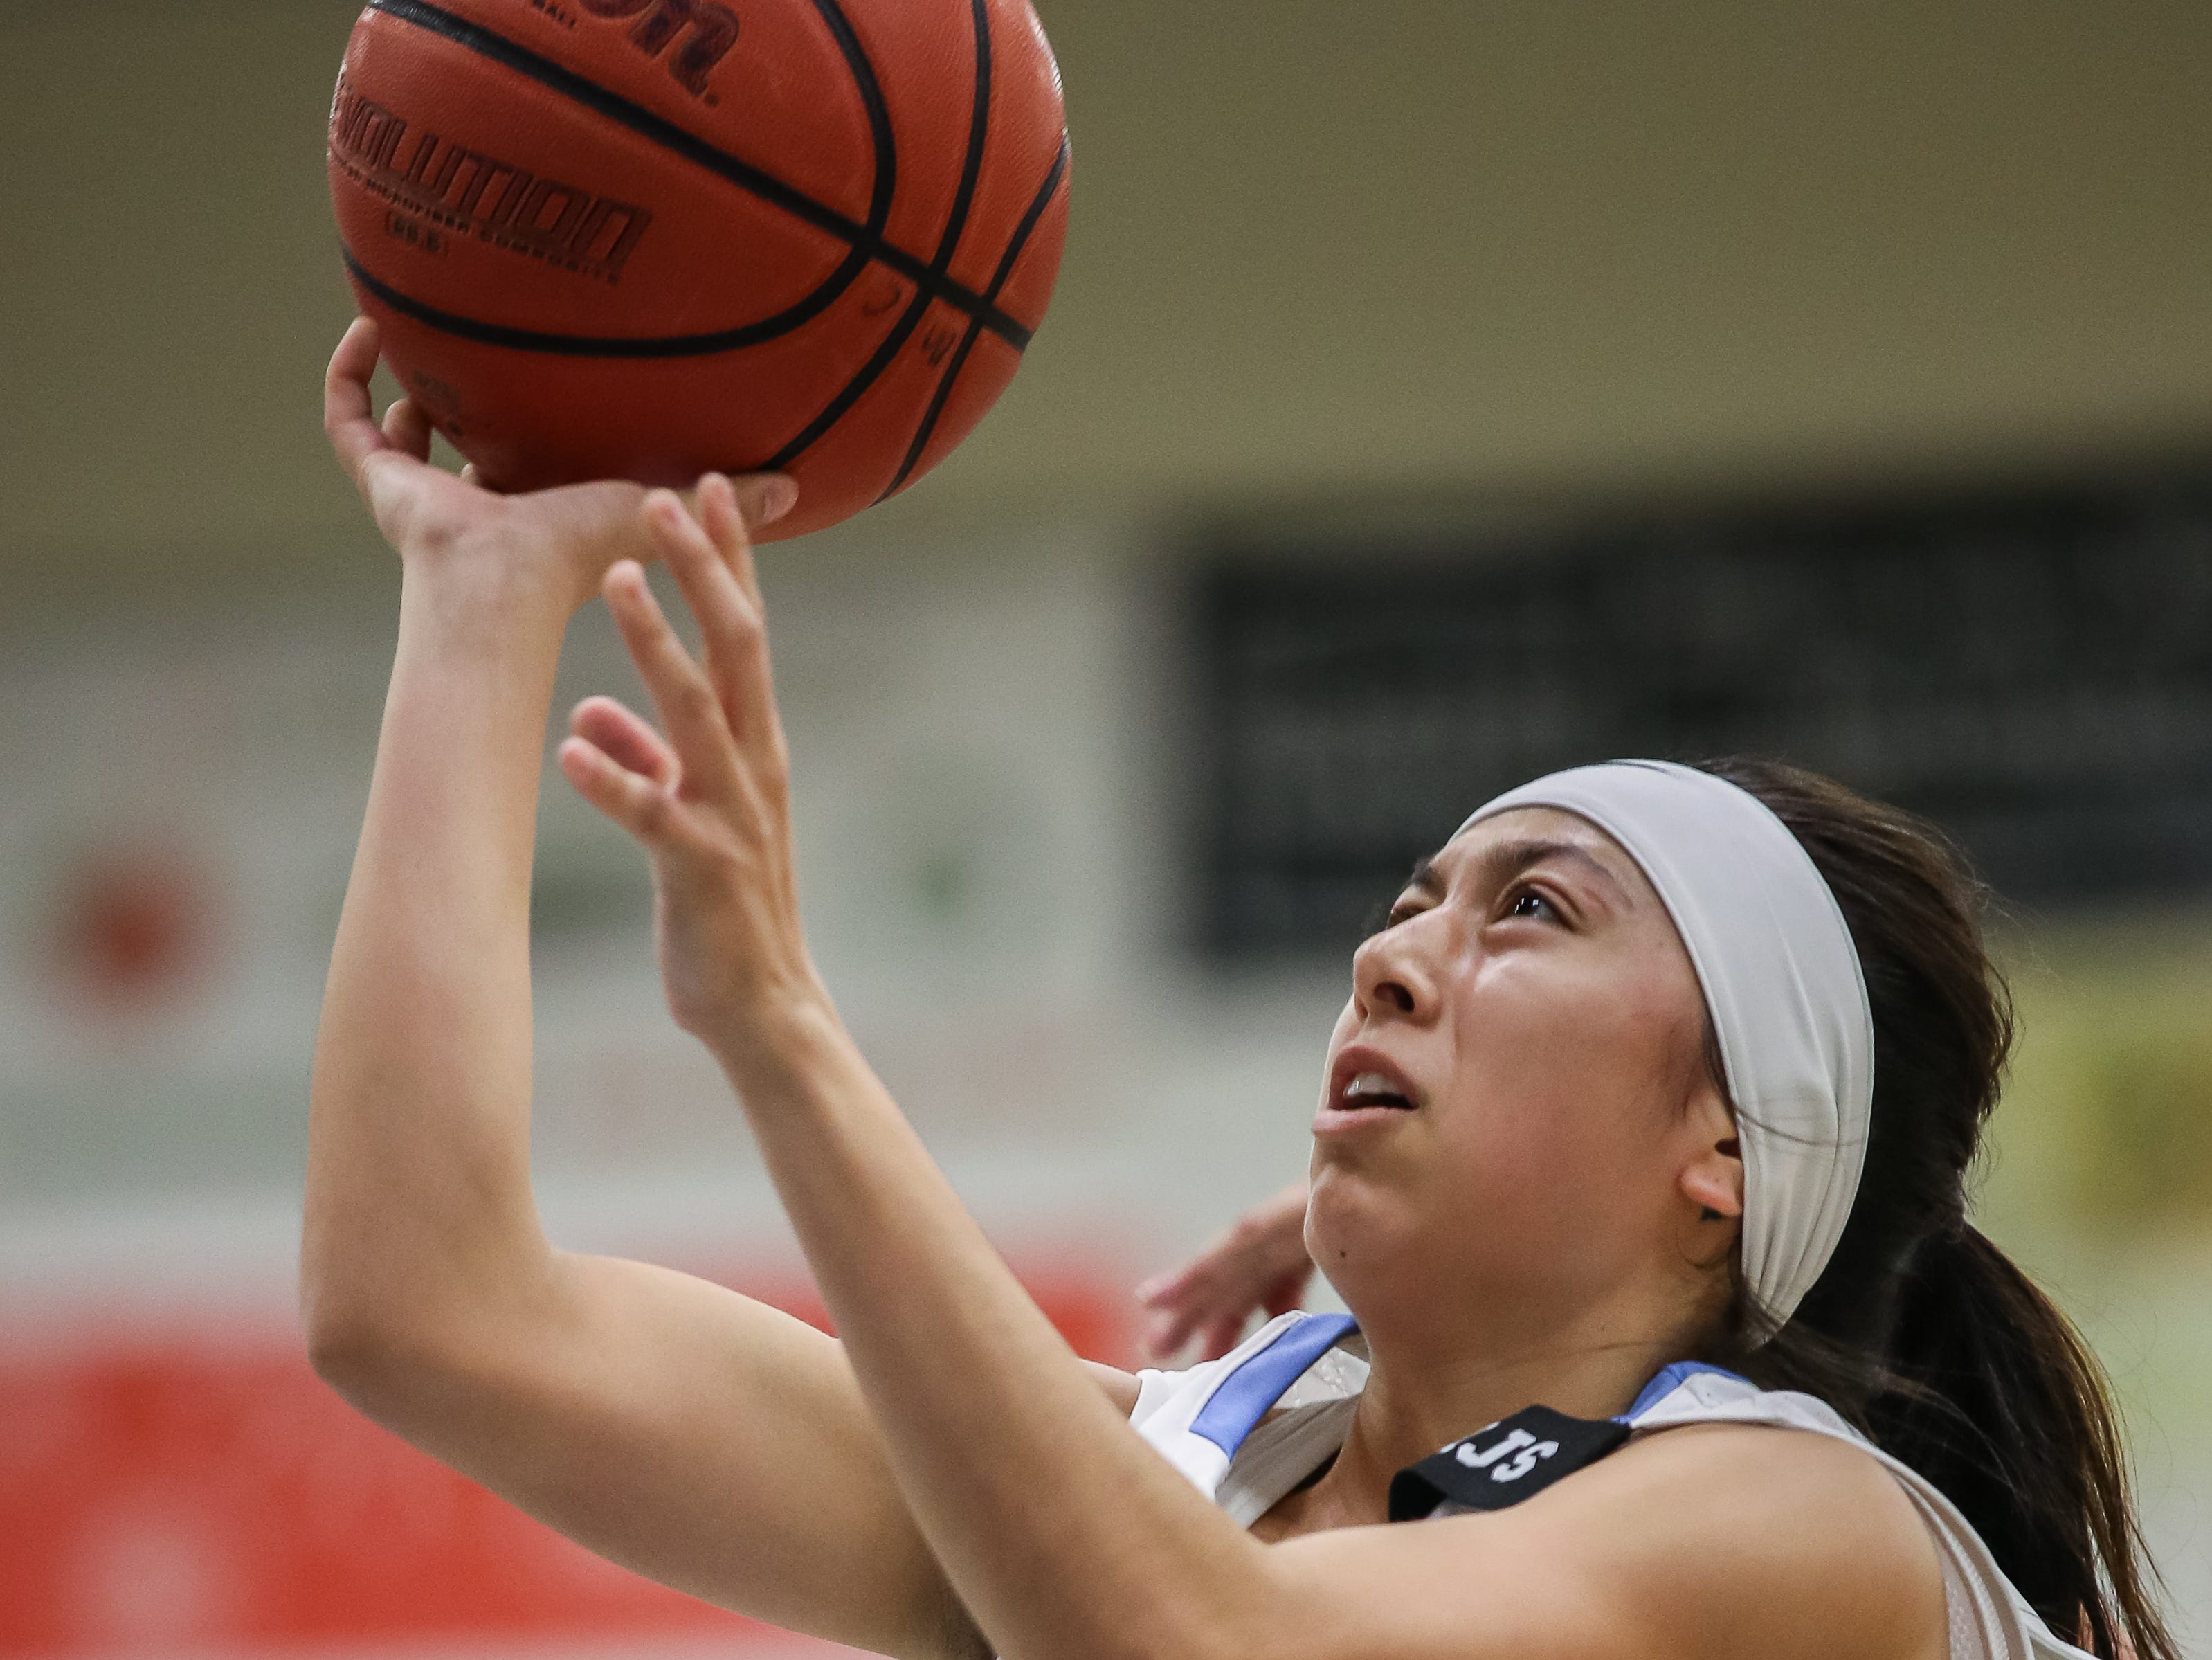 Moorpark College's Jazzy Carrasco goes to the basket during the Raiders' 86-56 win over Cerritos in a Southern California regional semifinal game Saturday night at Moorpark College. Carrasco scored a game-high 21 points.